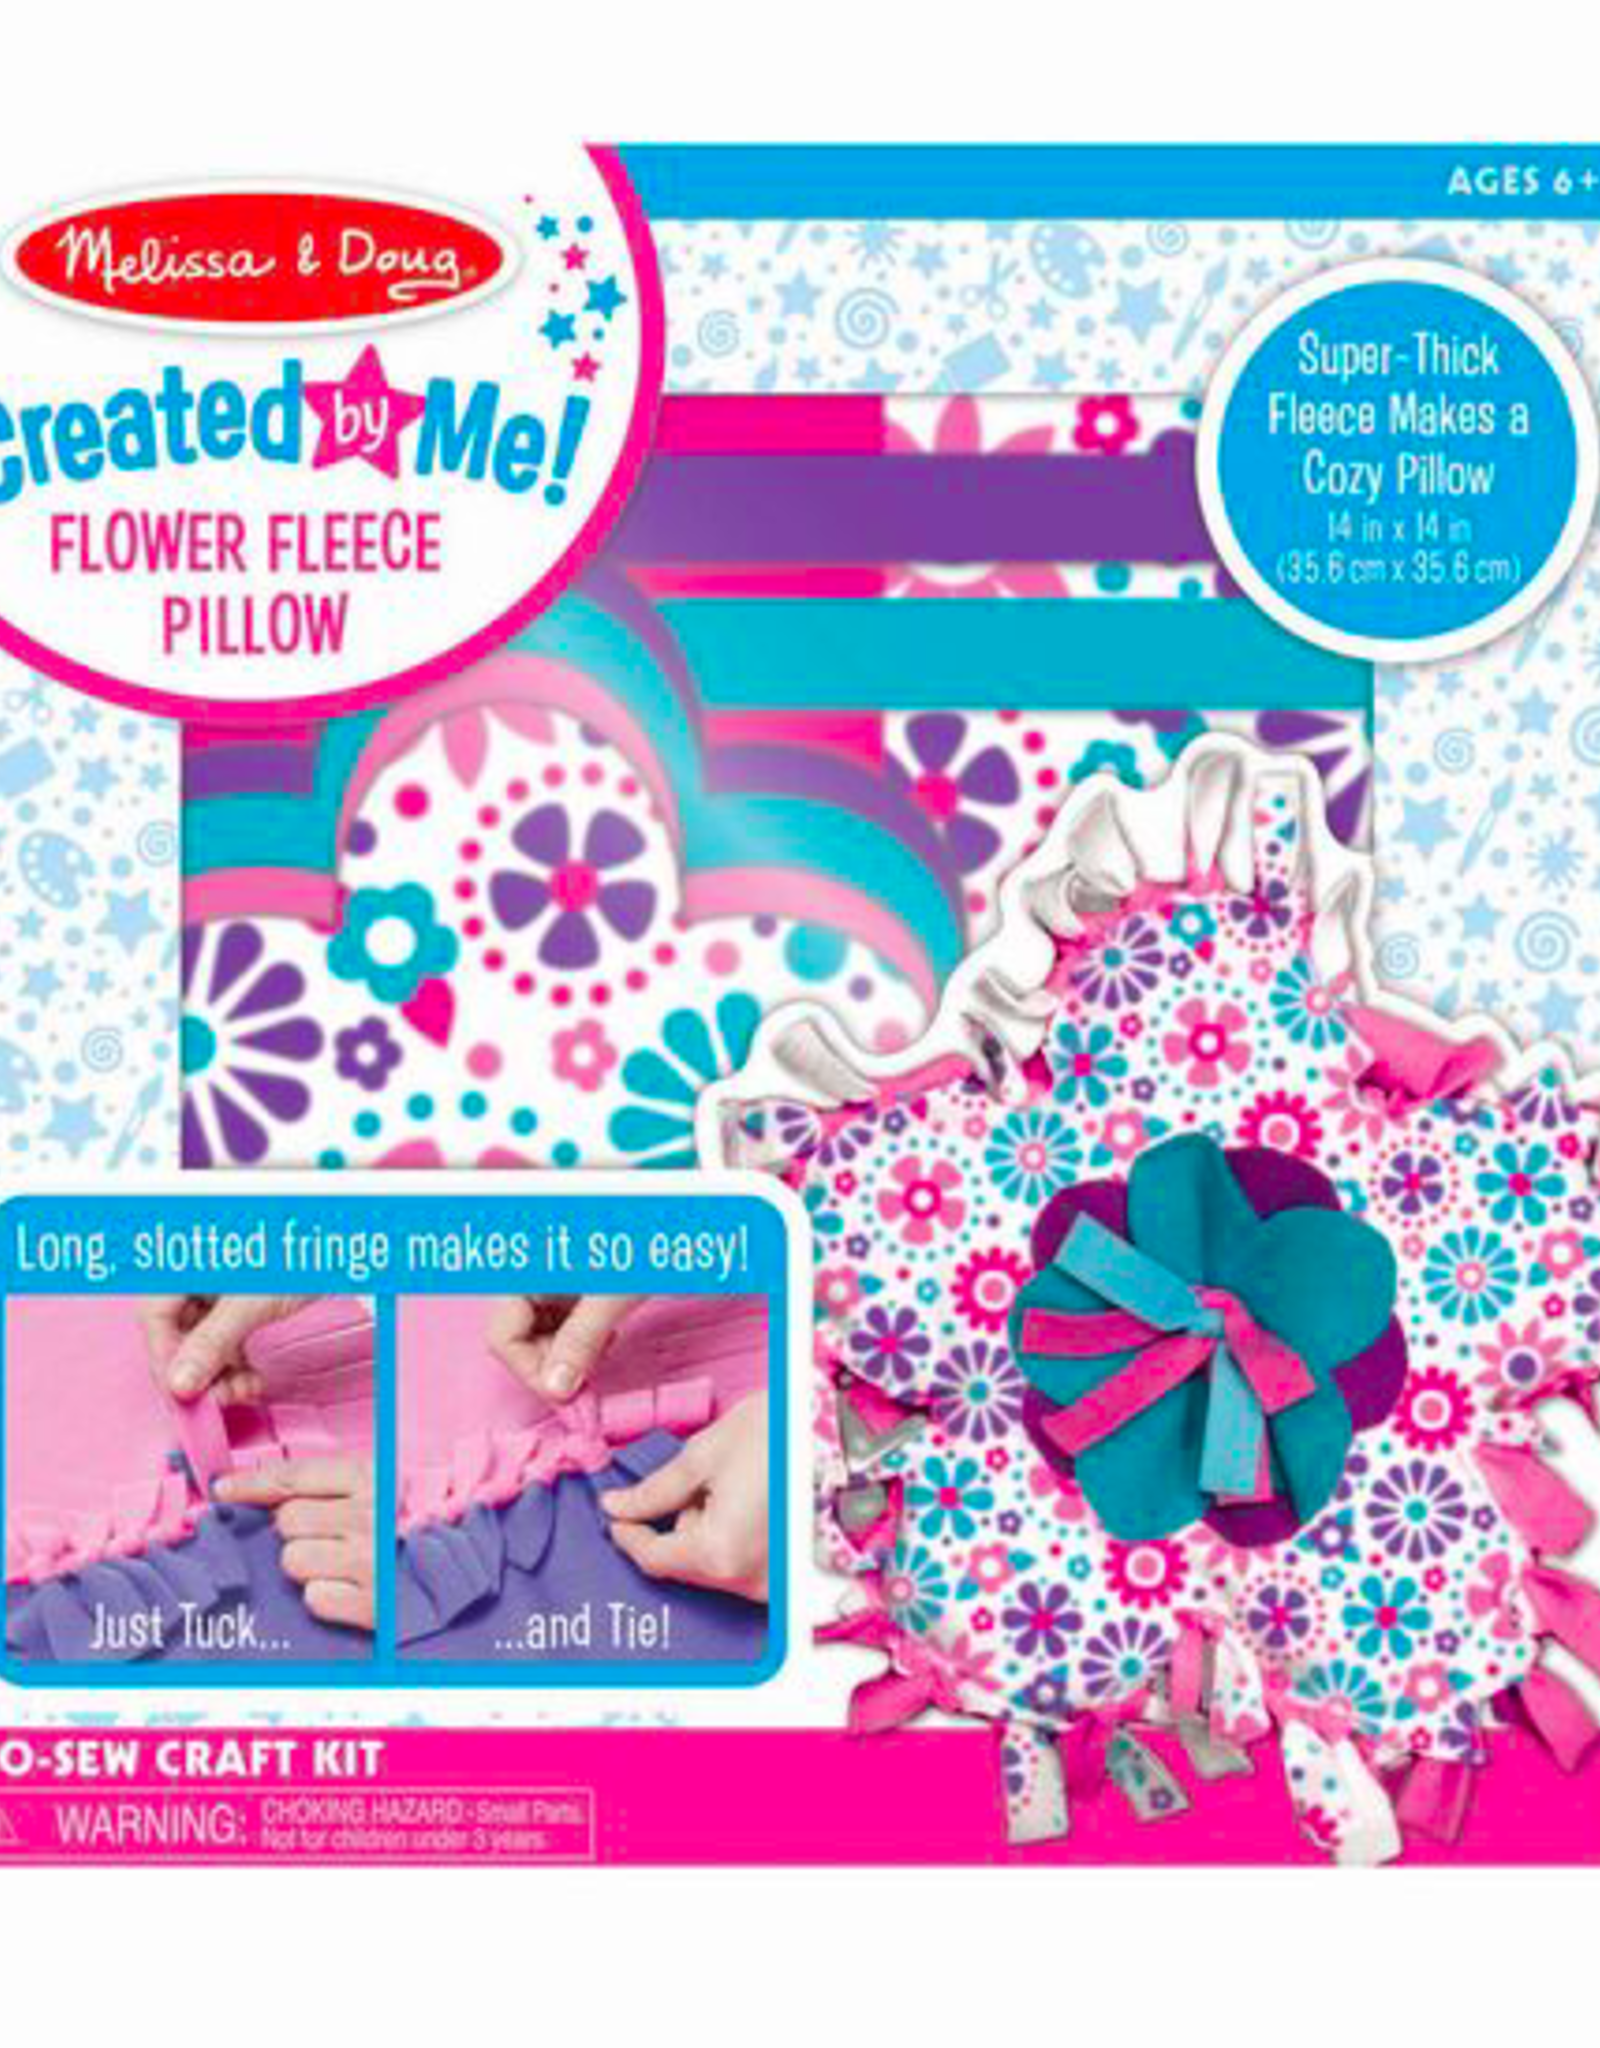 Melissa & Doug Created by Me- Flower Fleece Pillow